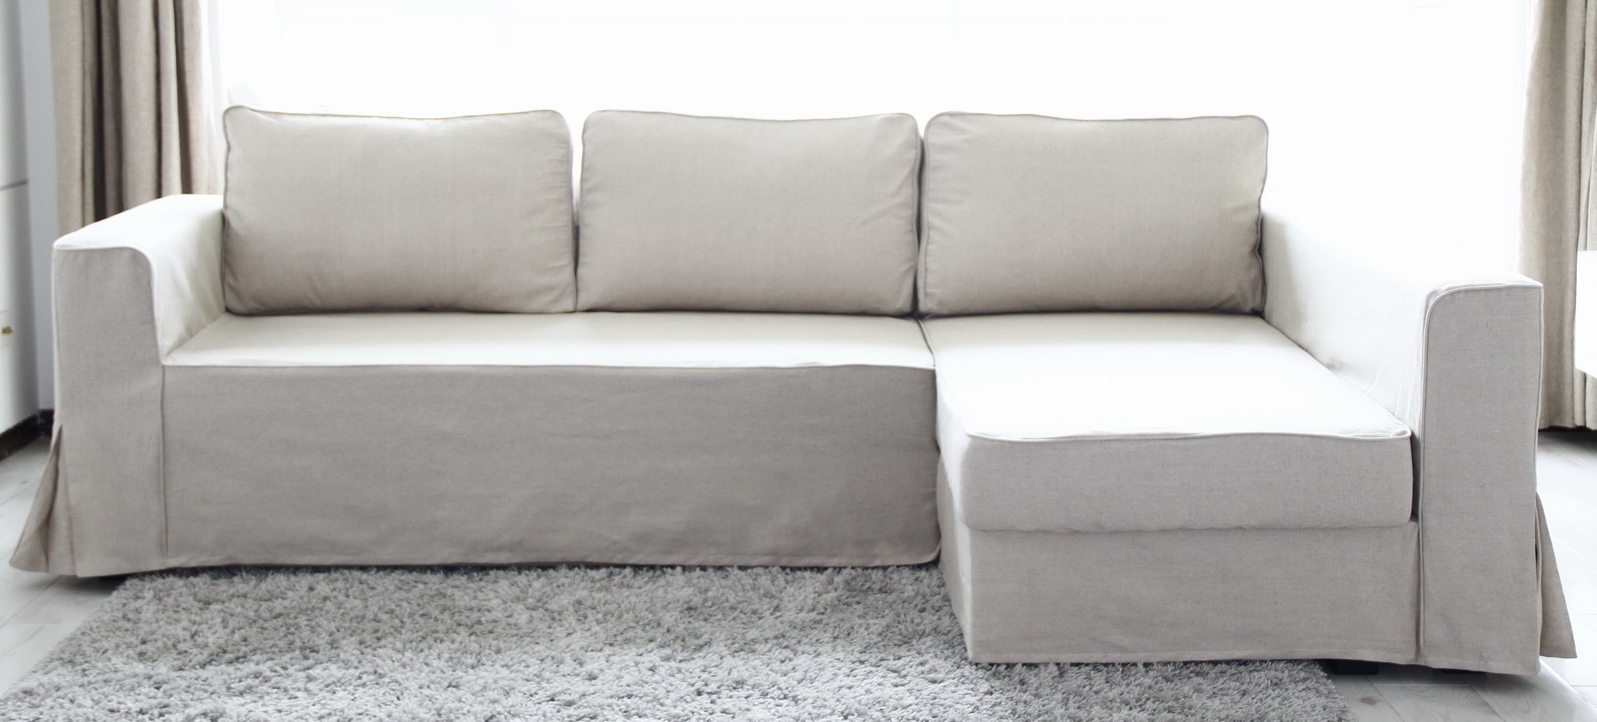 Well Known Loose Fit Linen Manstad Sofa Slipcovers Now Available Within Manstad Sofas (View 9 of 20)